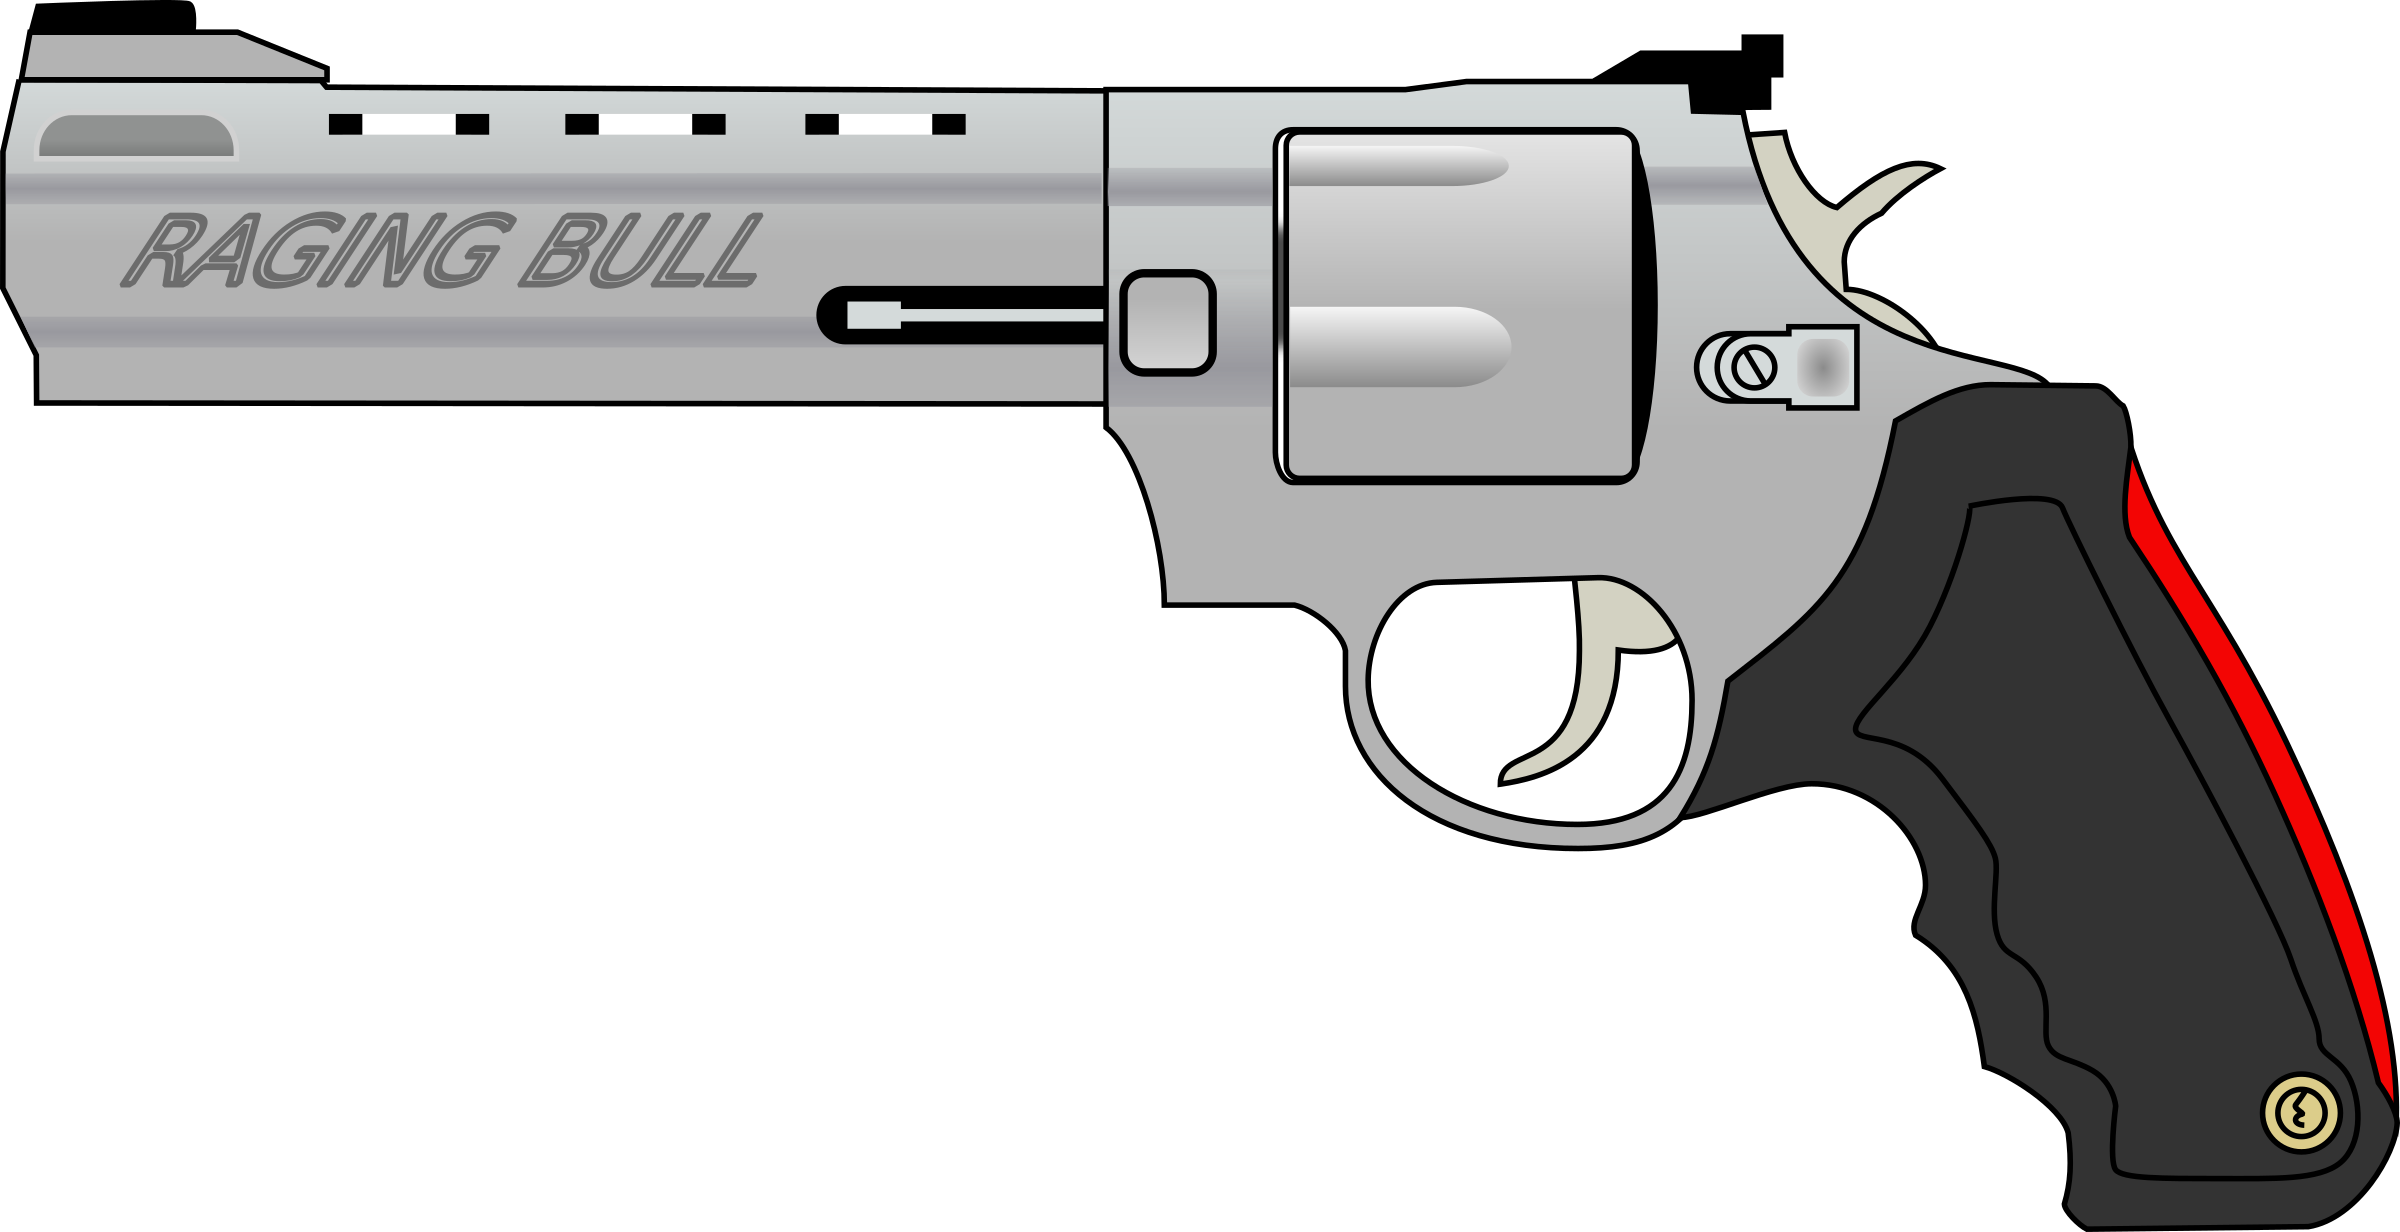 Raging bull png. Gun icons free and